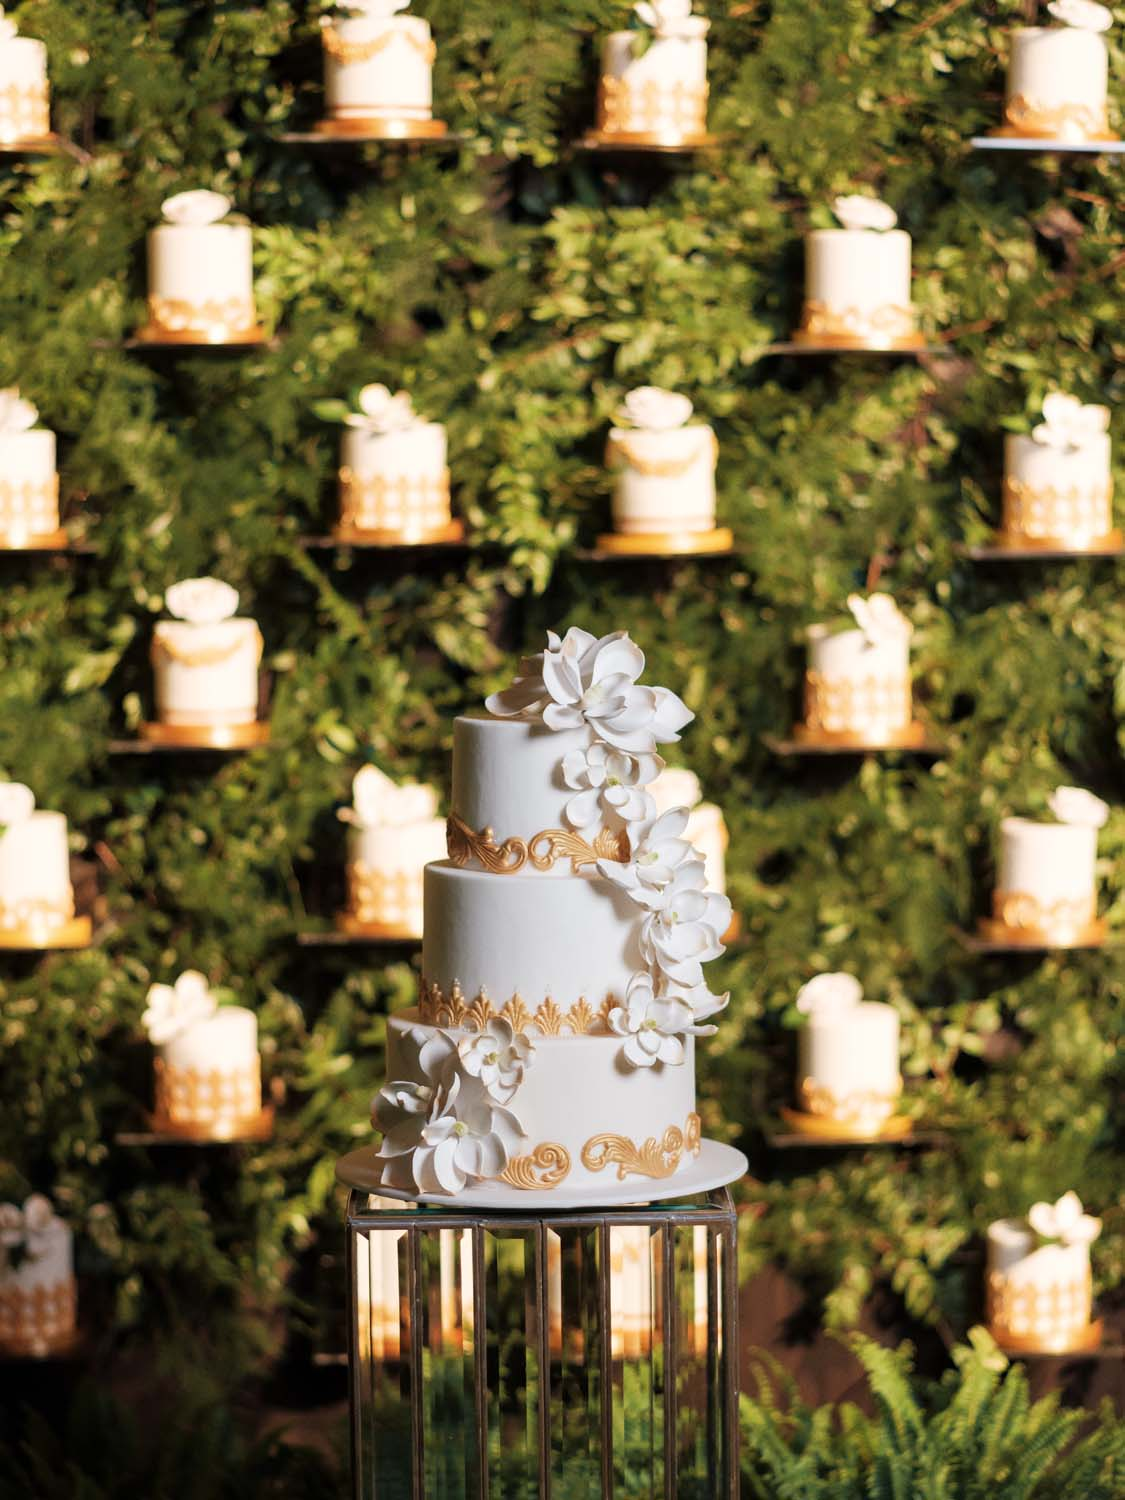 White and gold wedding cake in front of a wall of mini individual wedding cakes at luxury wedding at ARIA Las Vegas. Luxury Las Vegas Wedding Planner Andrea Eppolito. www.andreaeppolitoevents.com. Photo by Rene Zadori.